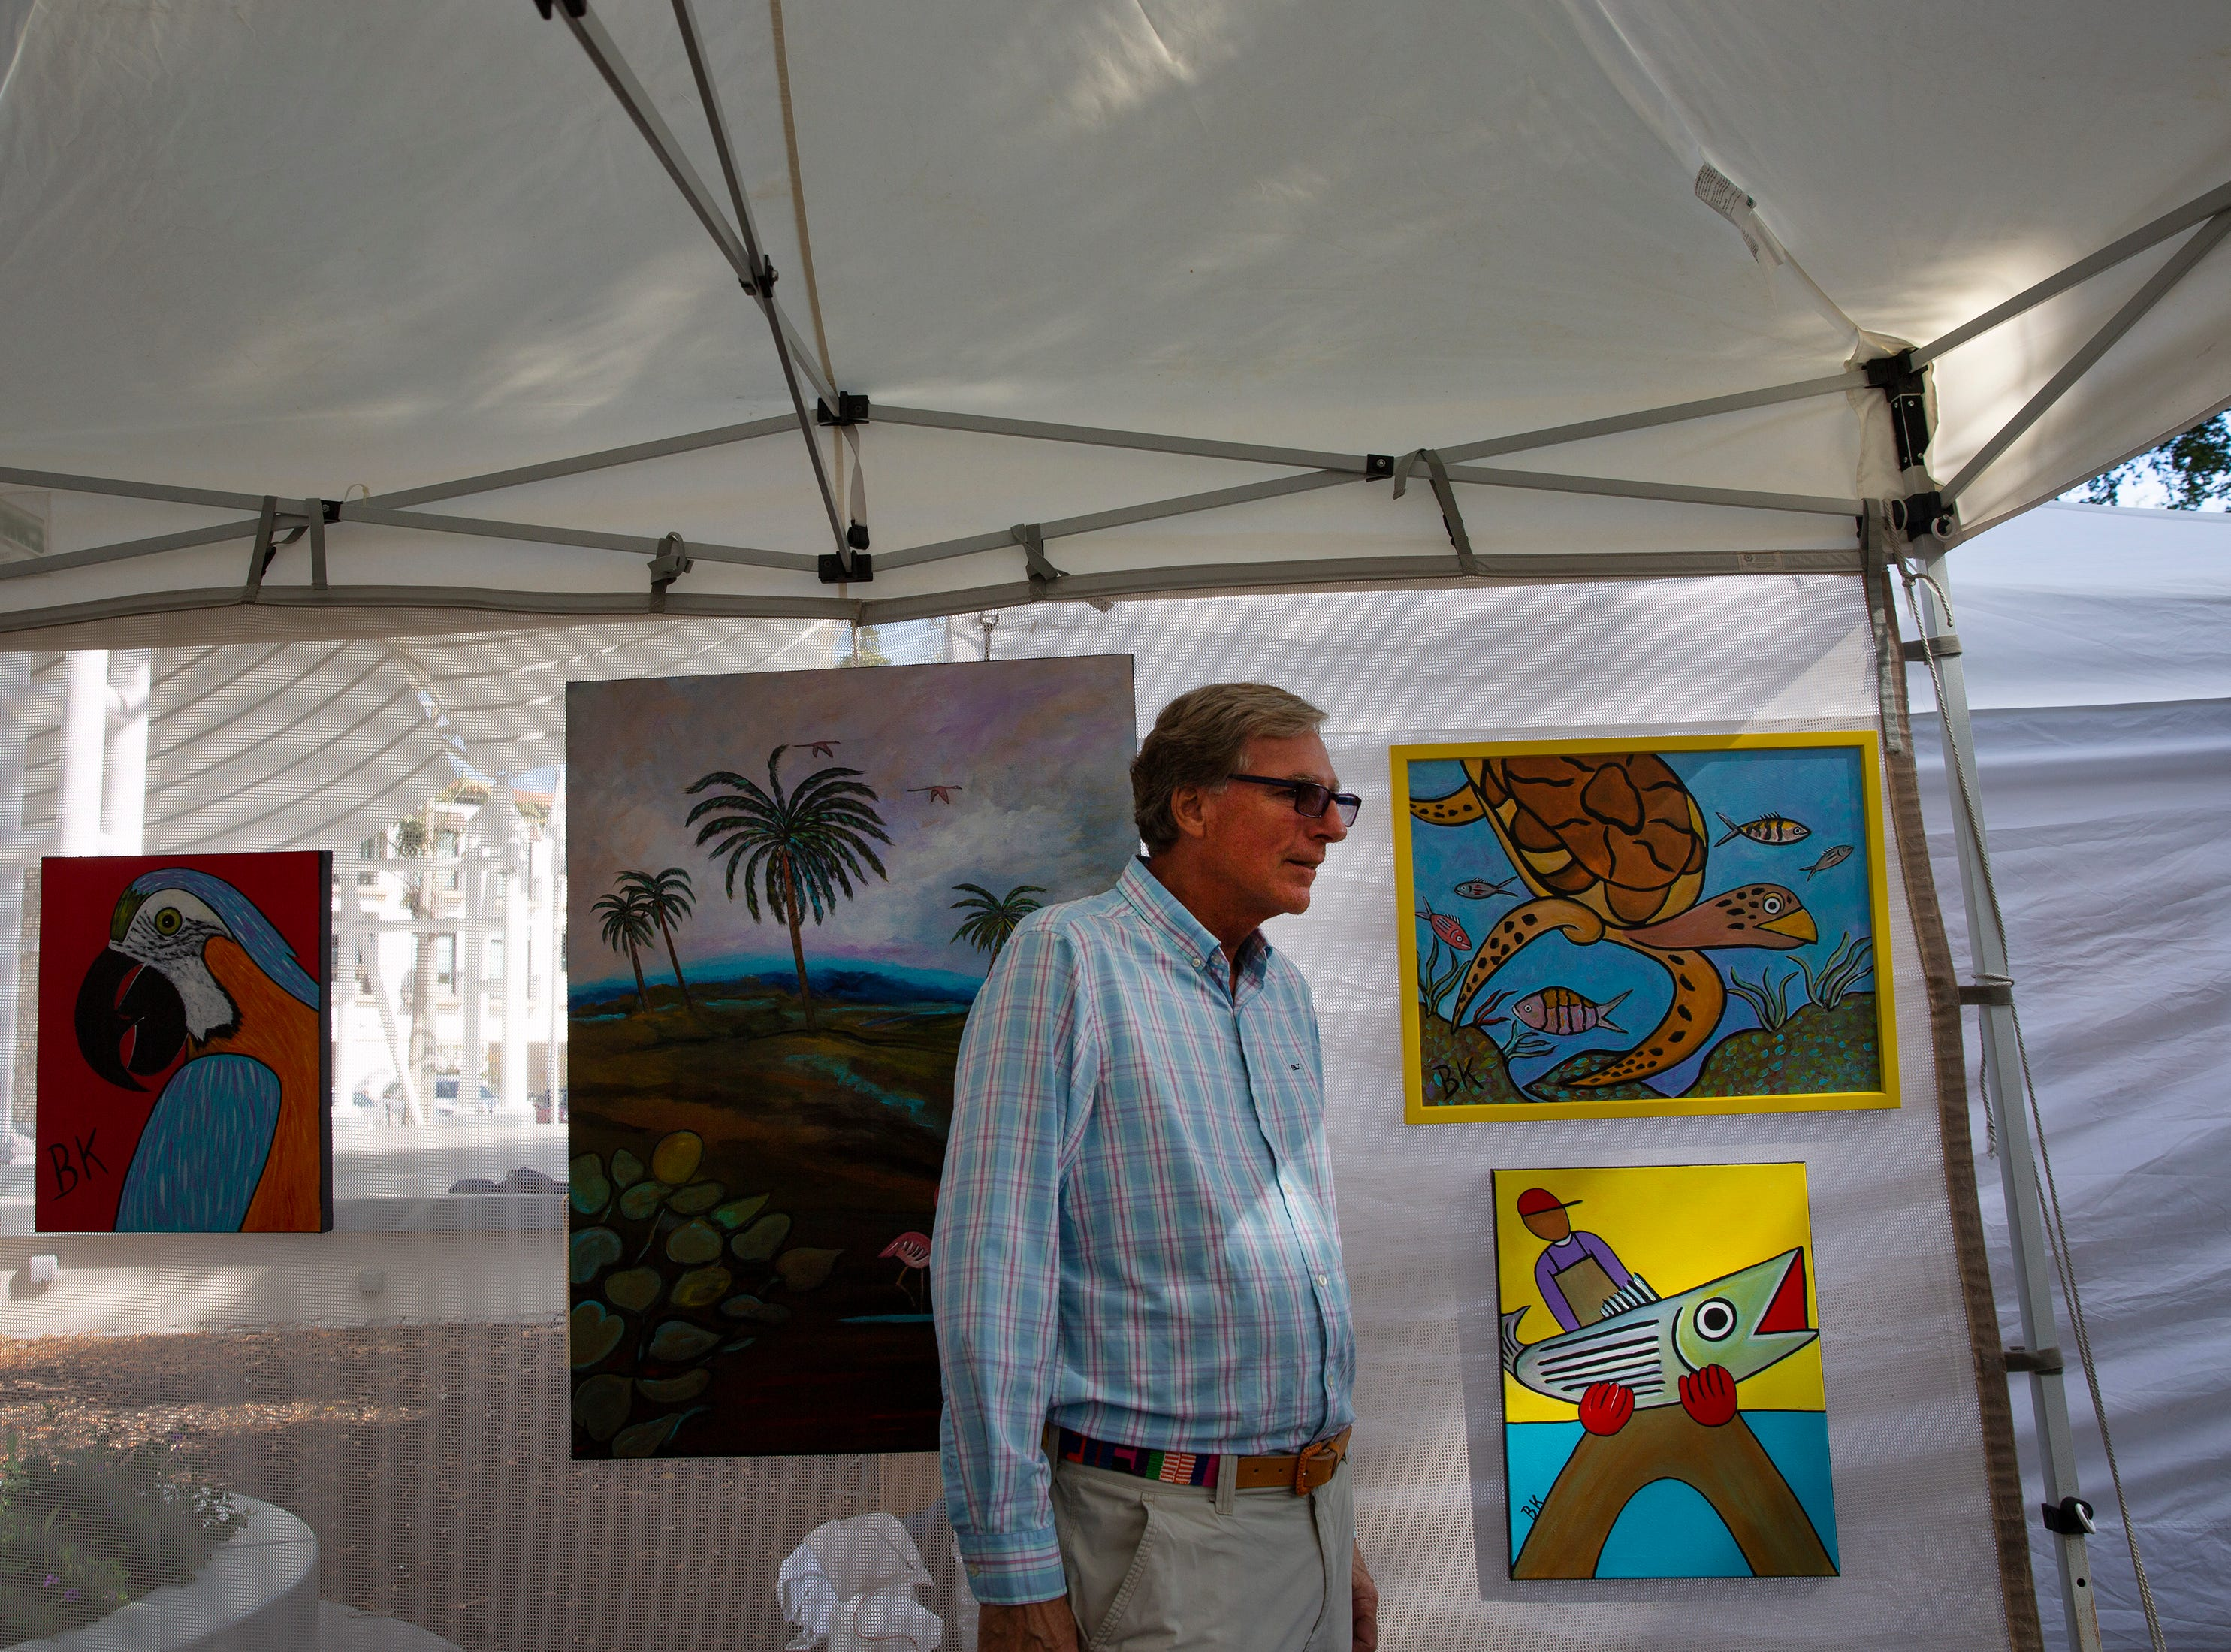 Artist Brian Kirkpatrick shows off his works at the Naples Artcrafters' monthly art show, Saturday, Jan. 12, 2019, in Cambier Park in Naples.